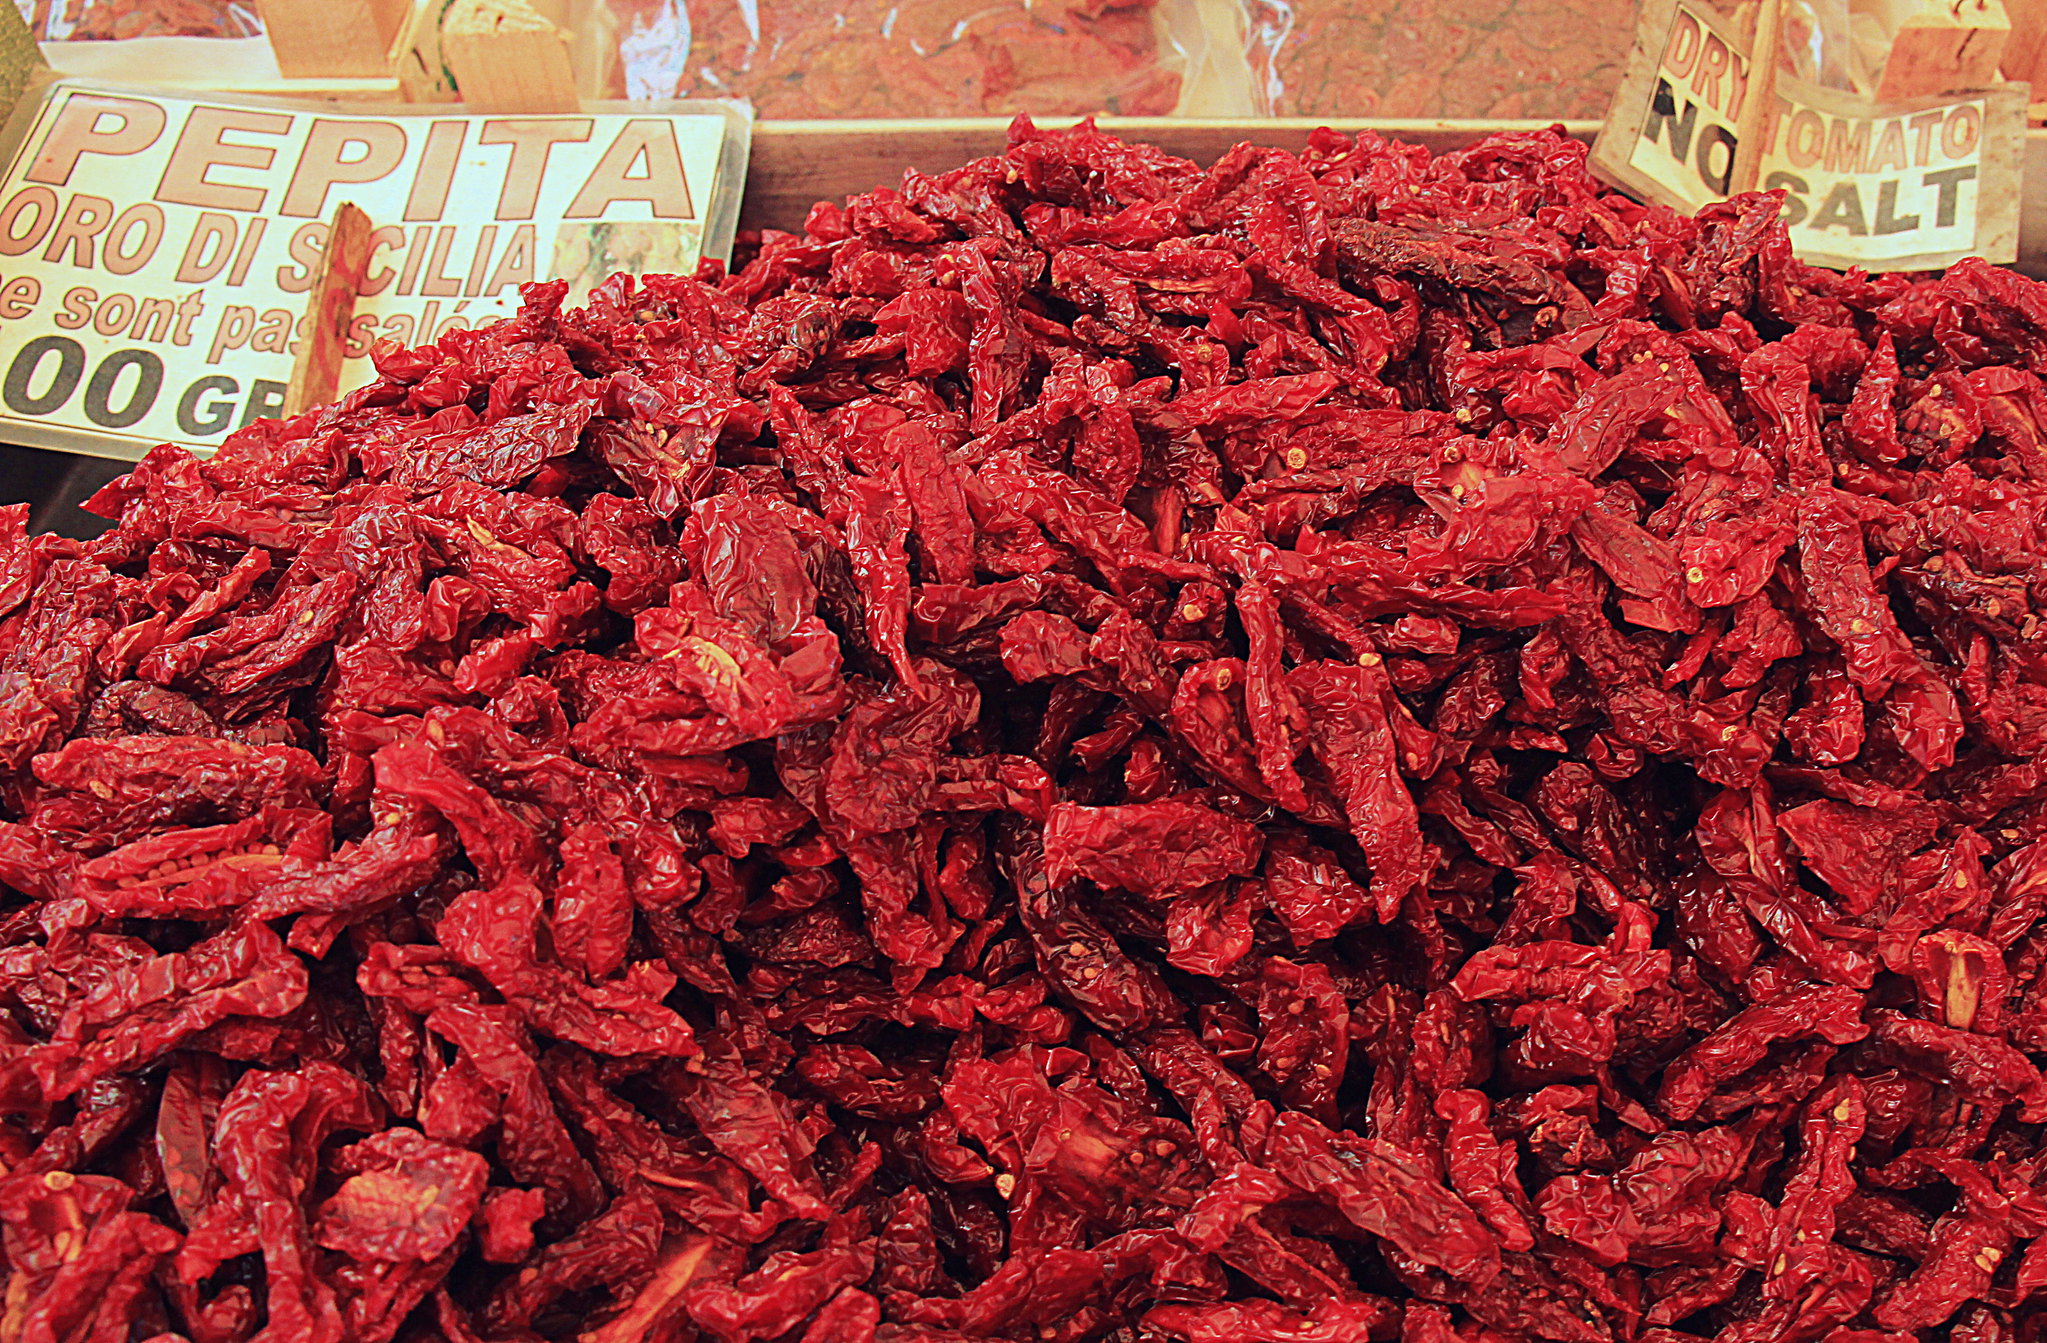 Sun dried tomatoes for sale at the Erberia